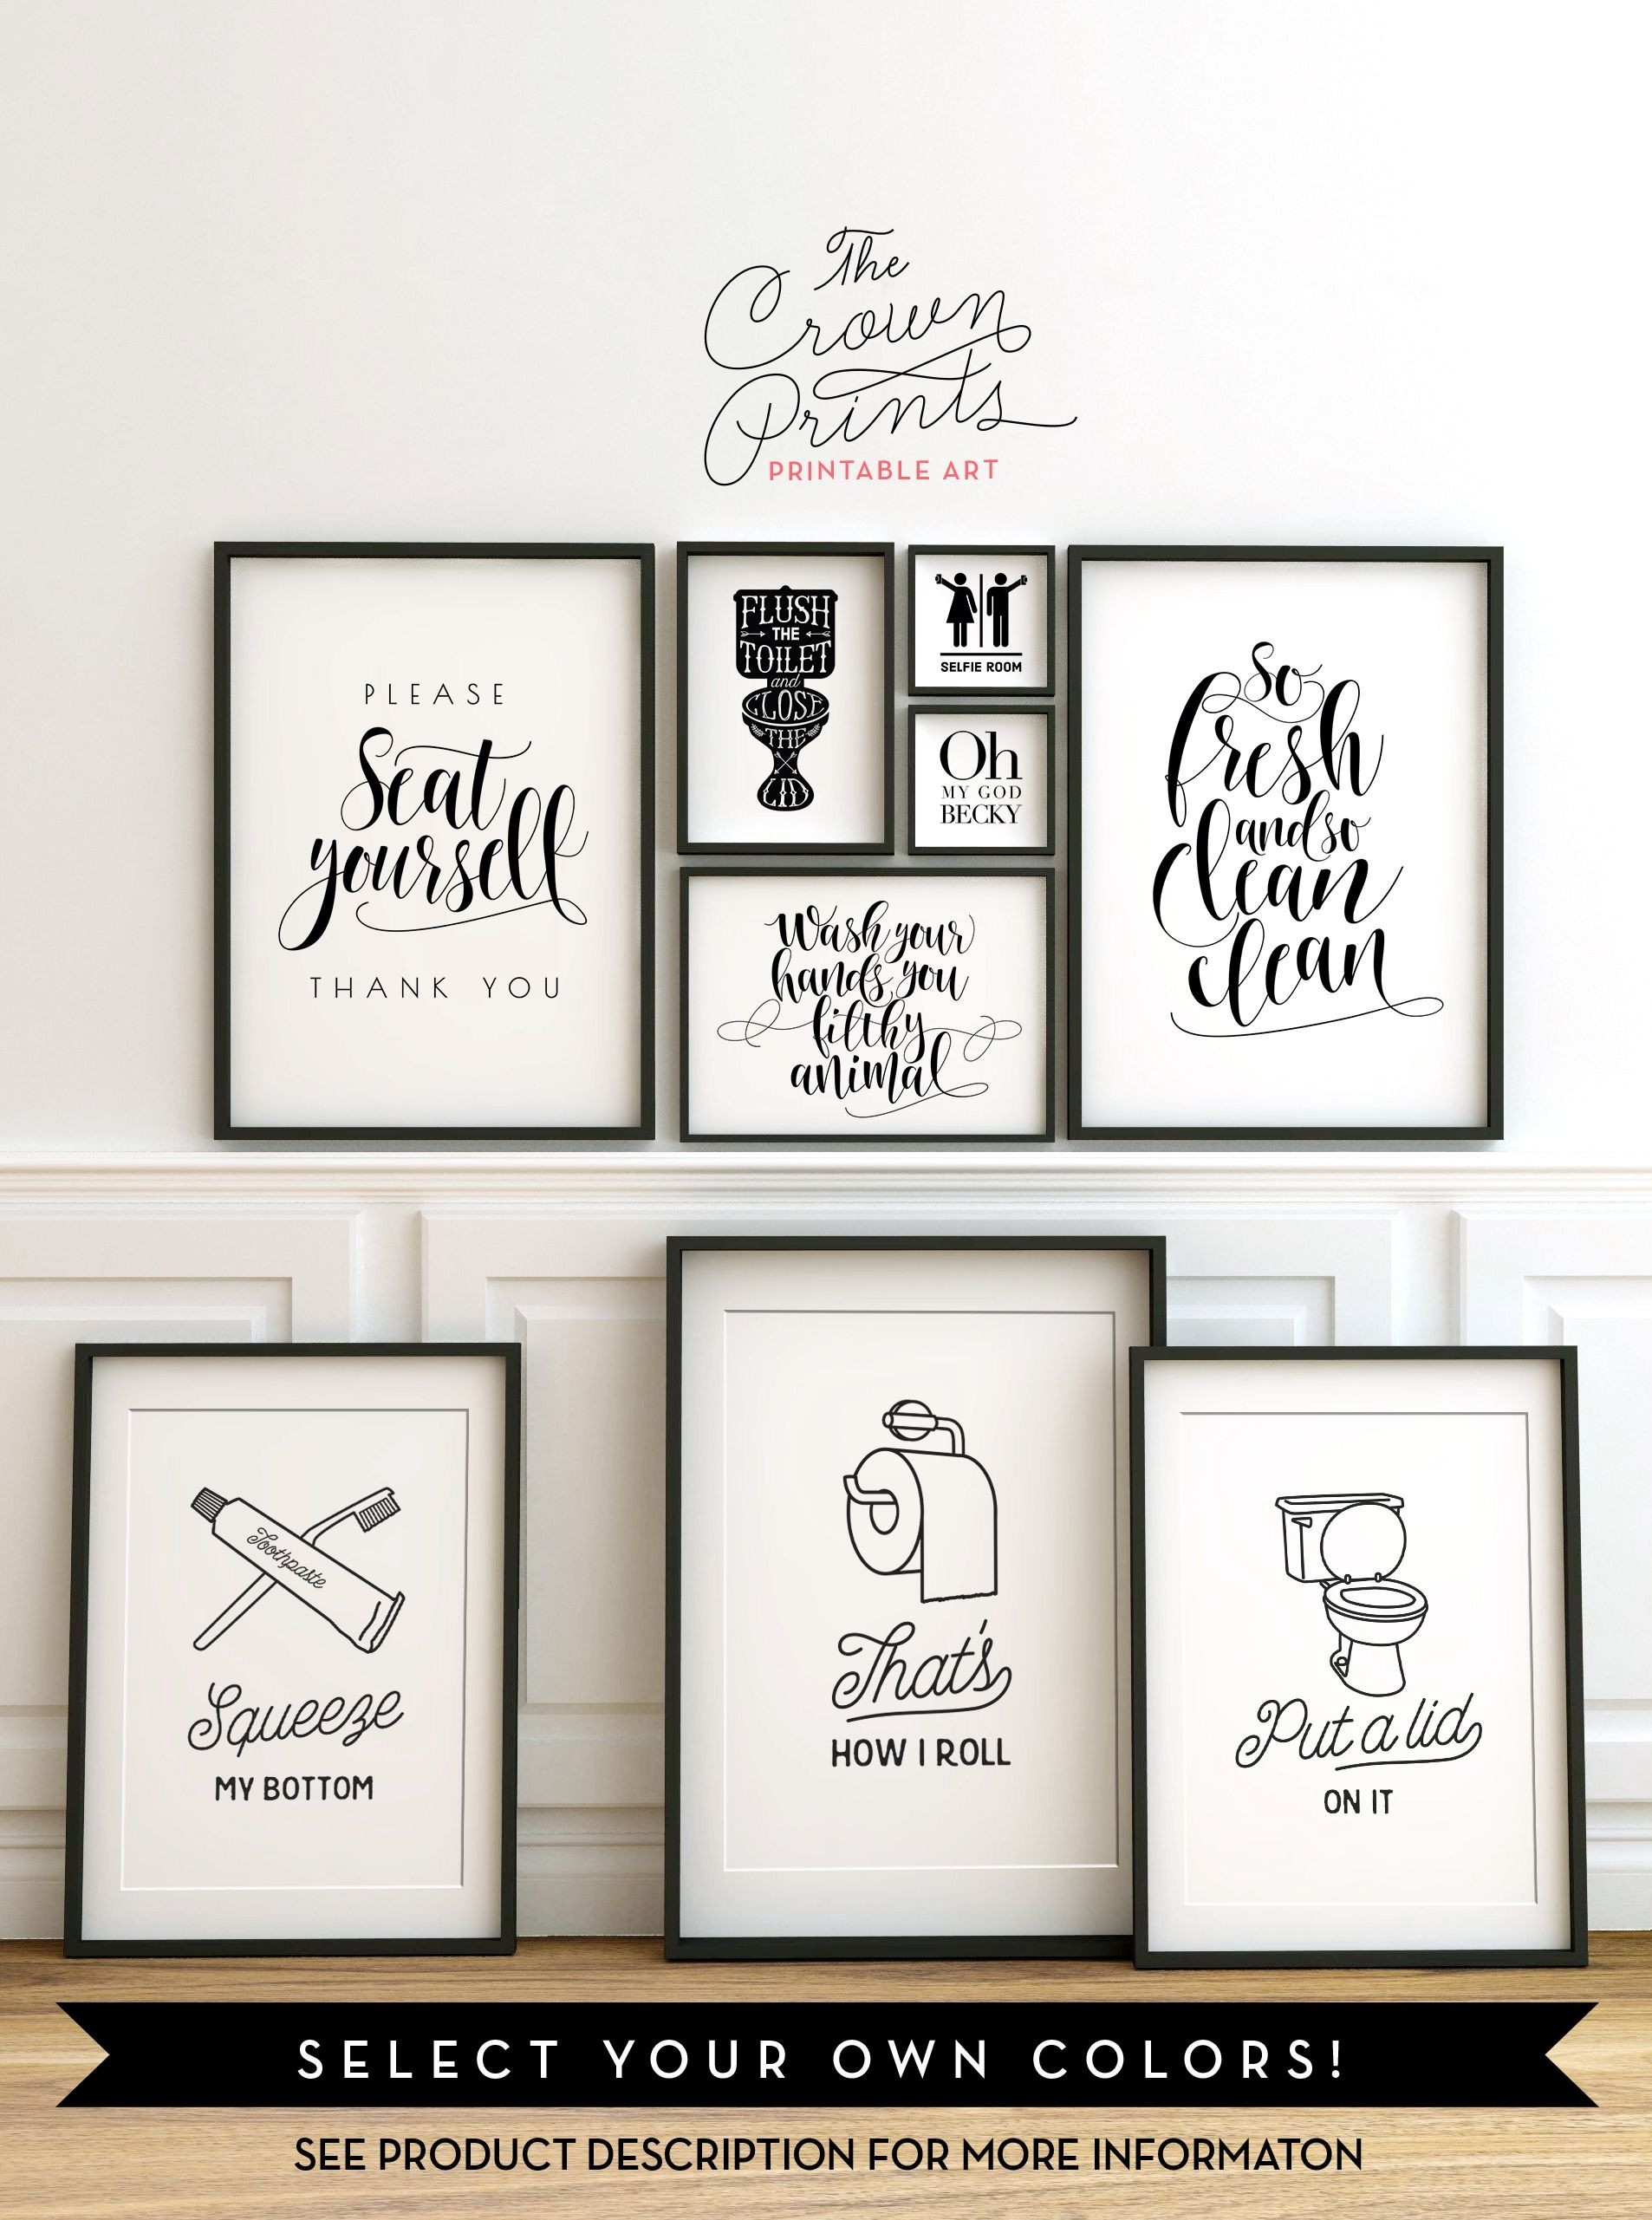 Printable Bathroom Wall Art From The Crown Prints On Etsy Lots Of Pertaining To Most Popular Bathroom Rules Wall Art (View 14 of 20)